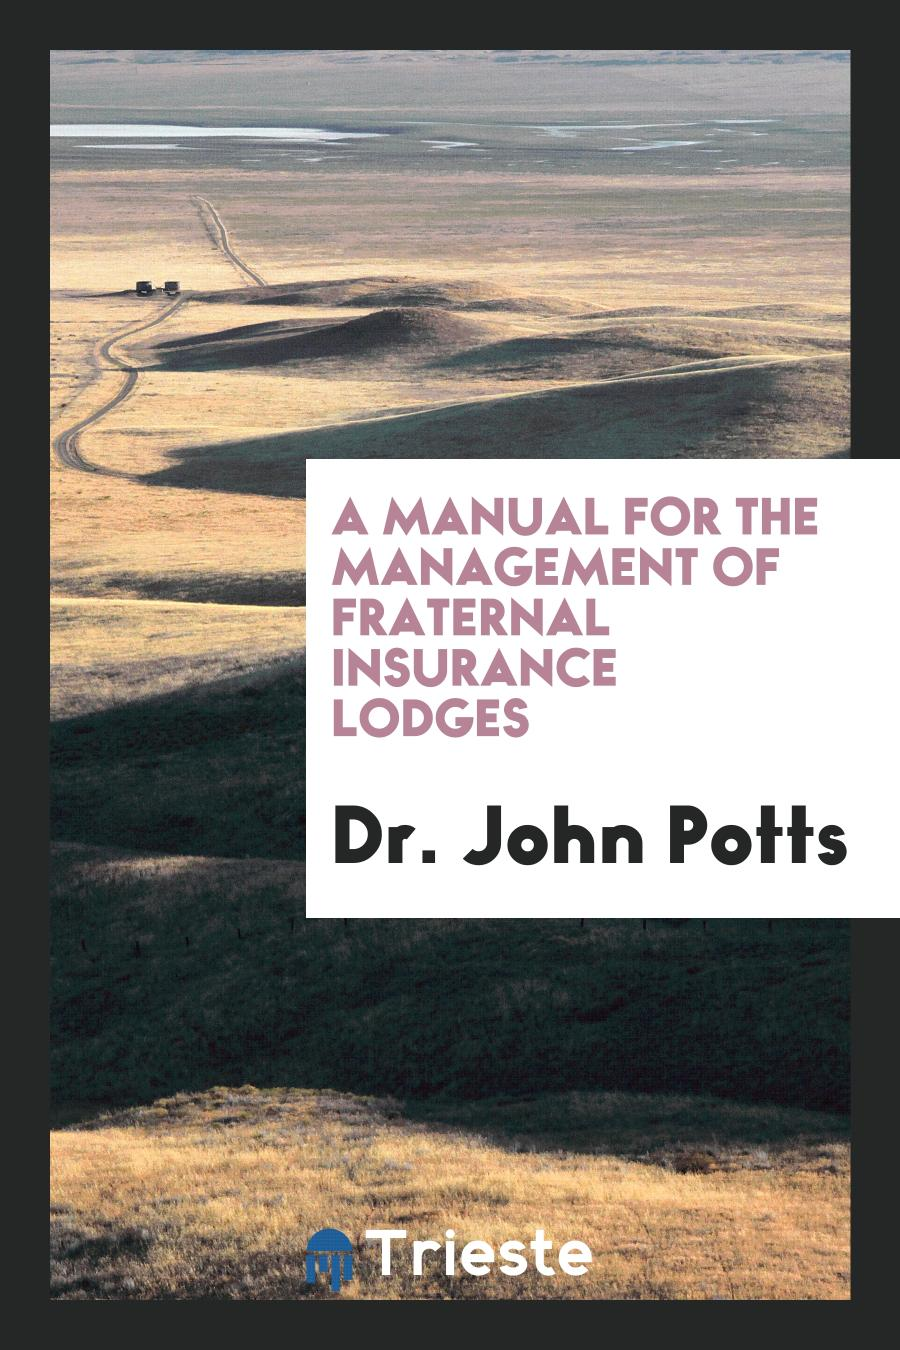 A Manual for the Management of Fraternal Insurance Lodges